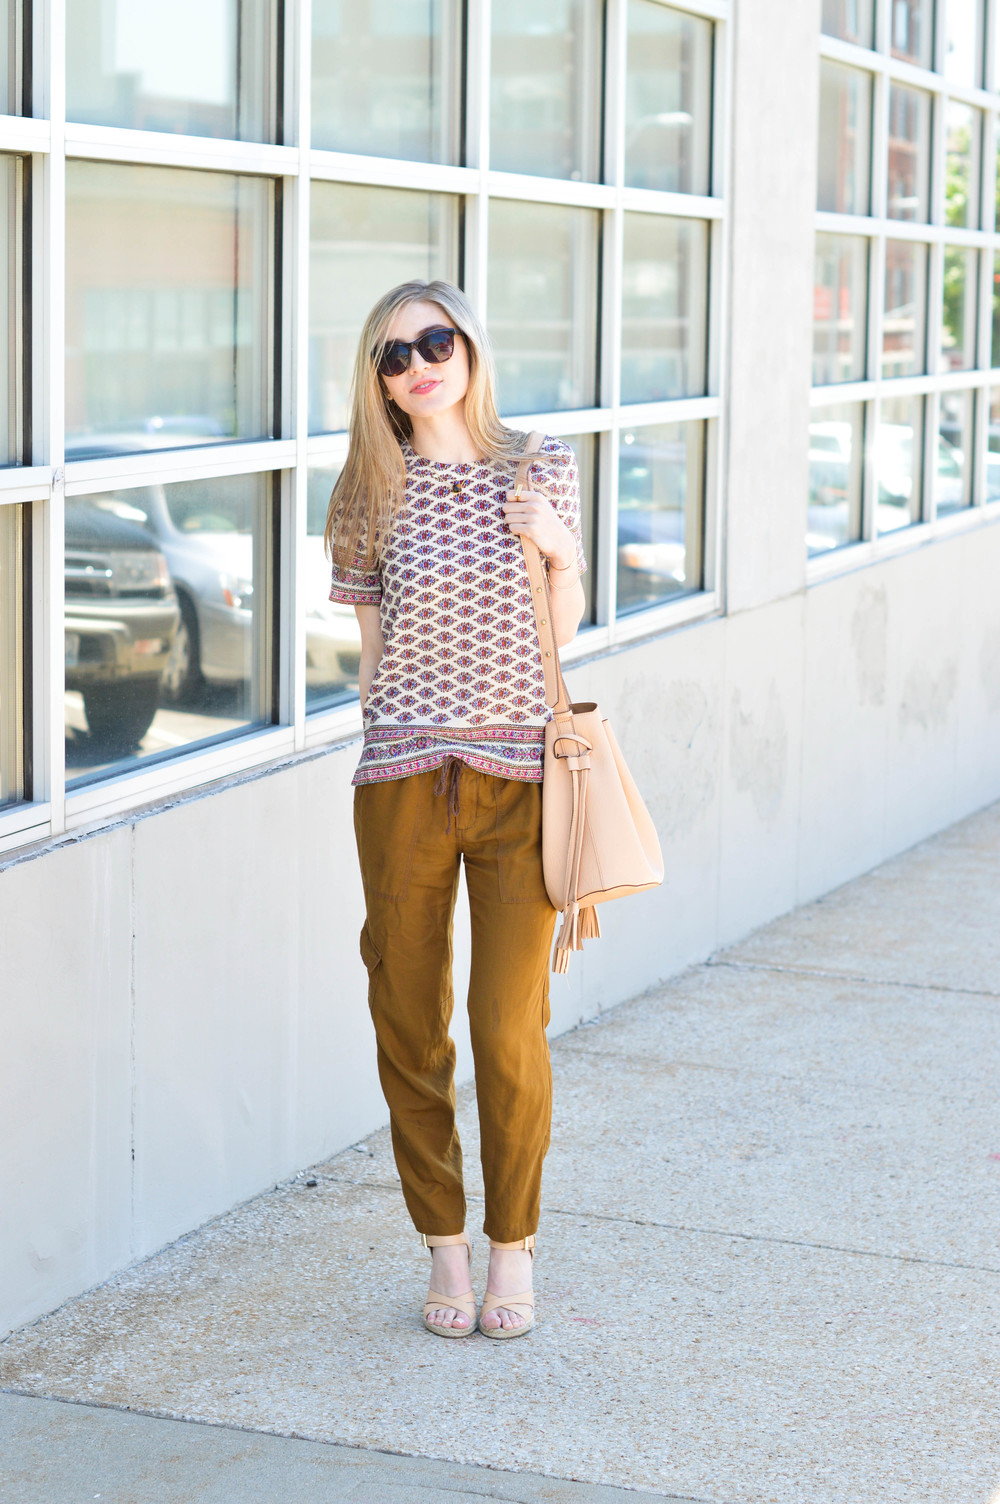 Street style tip of the day: Jogger pants